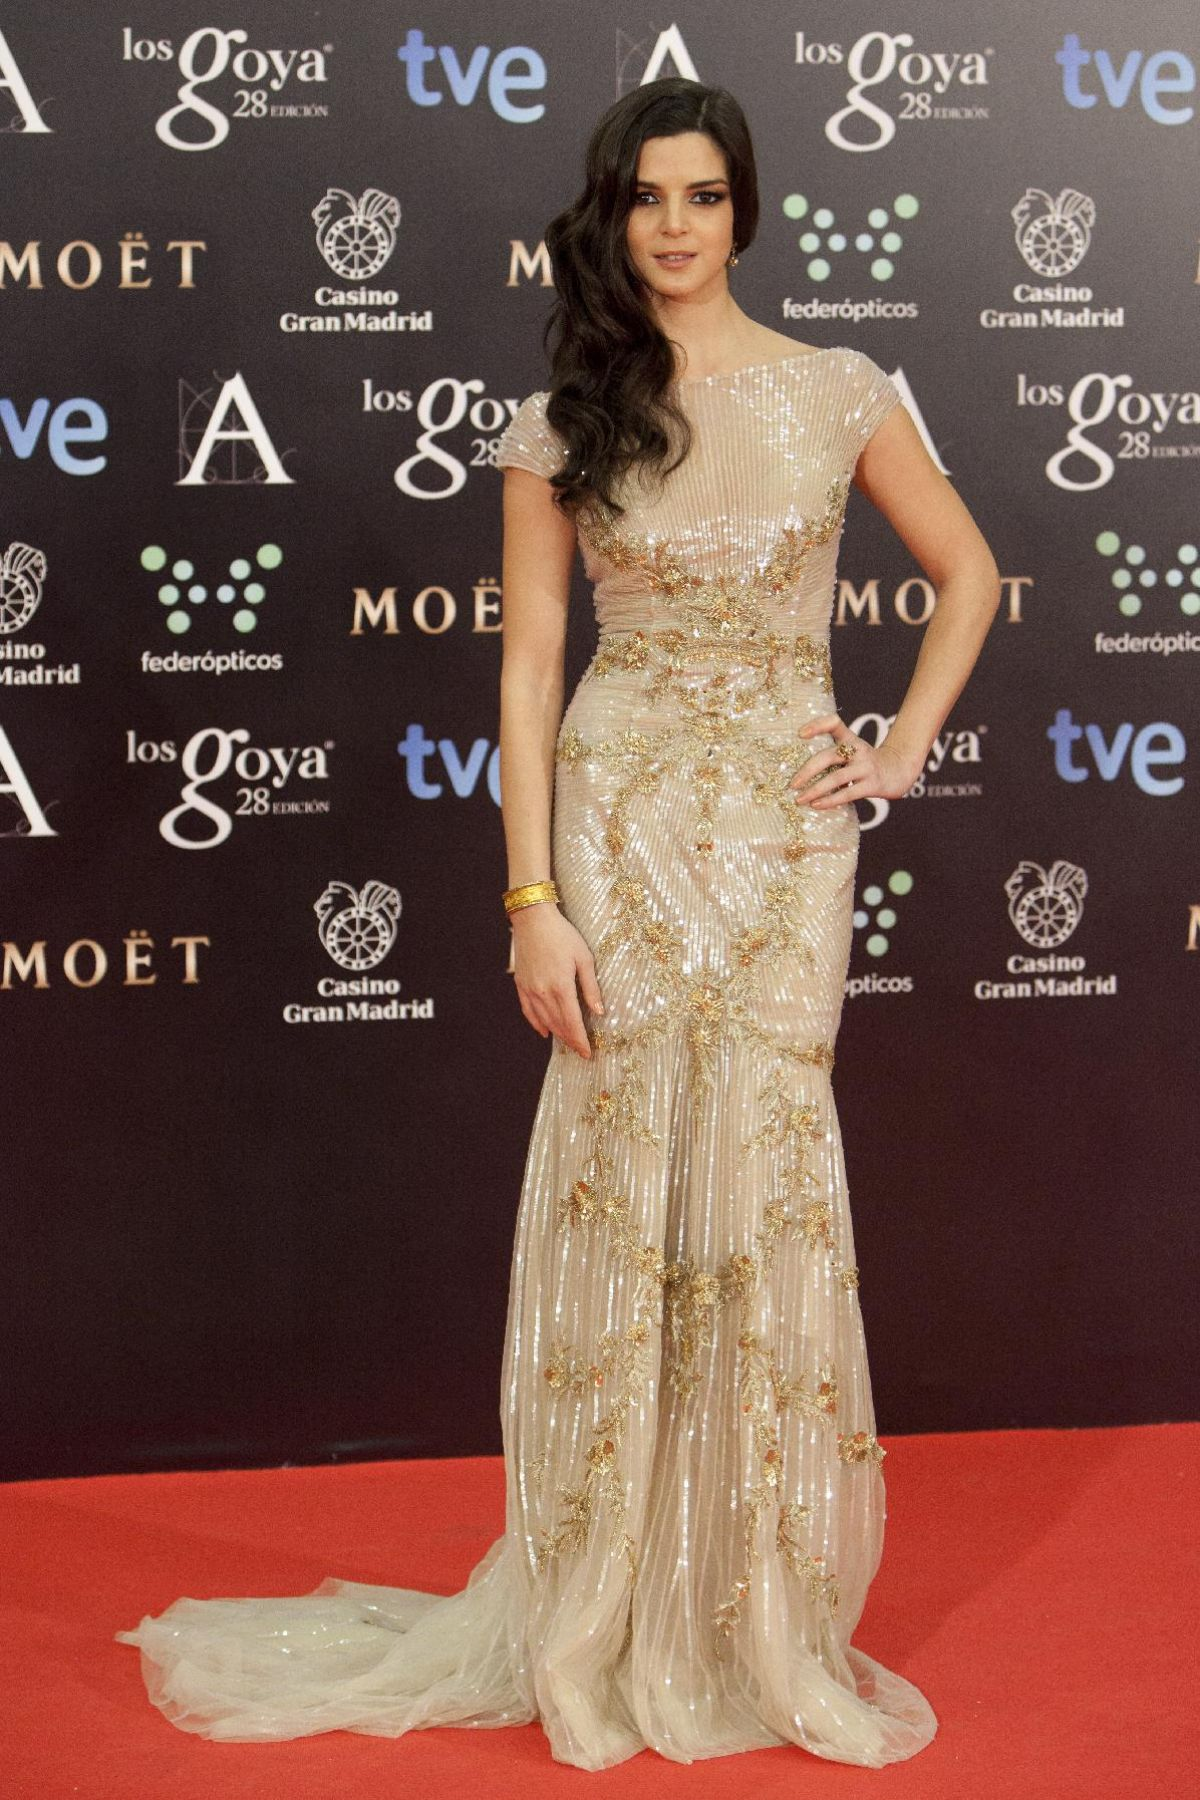 CLARA LARGO at 2014 Goya Film Awards in Madrid